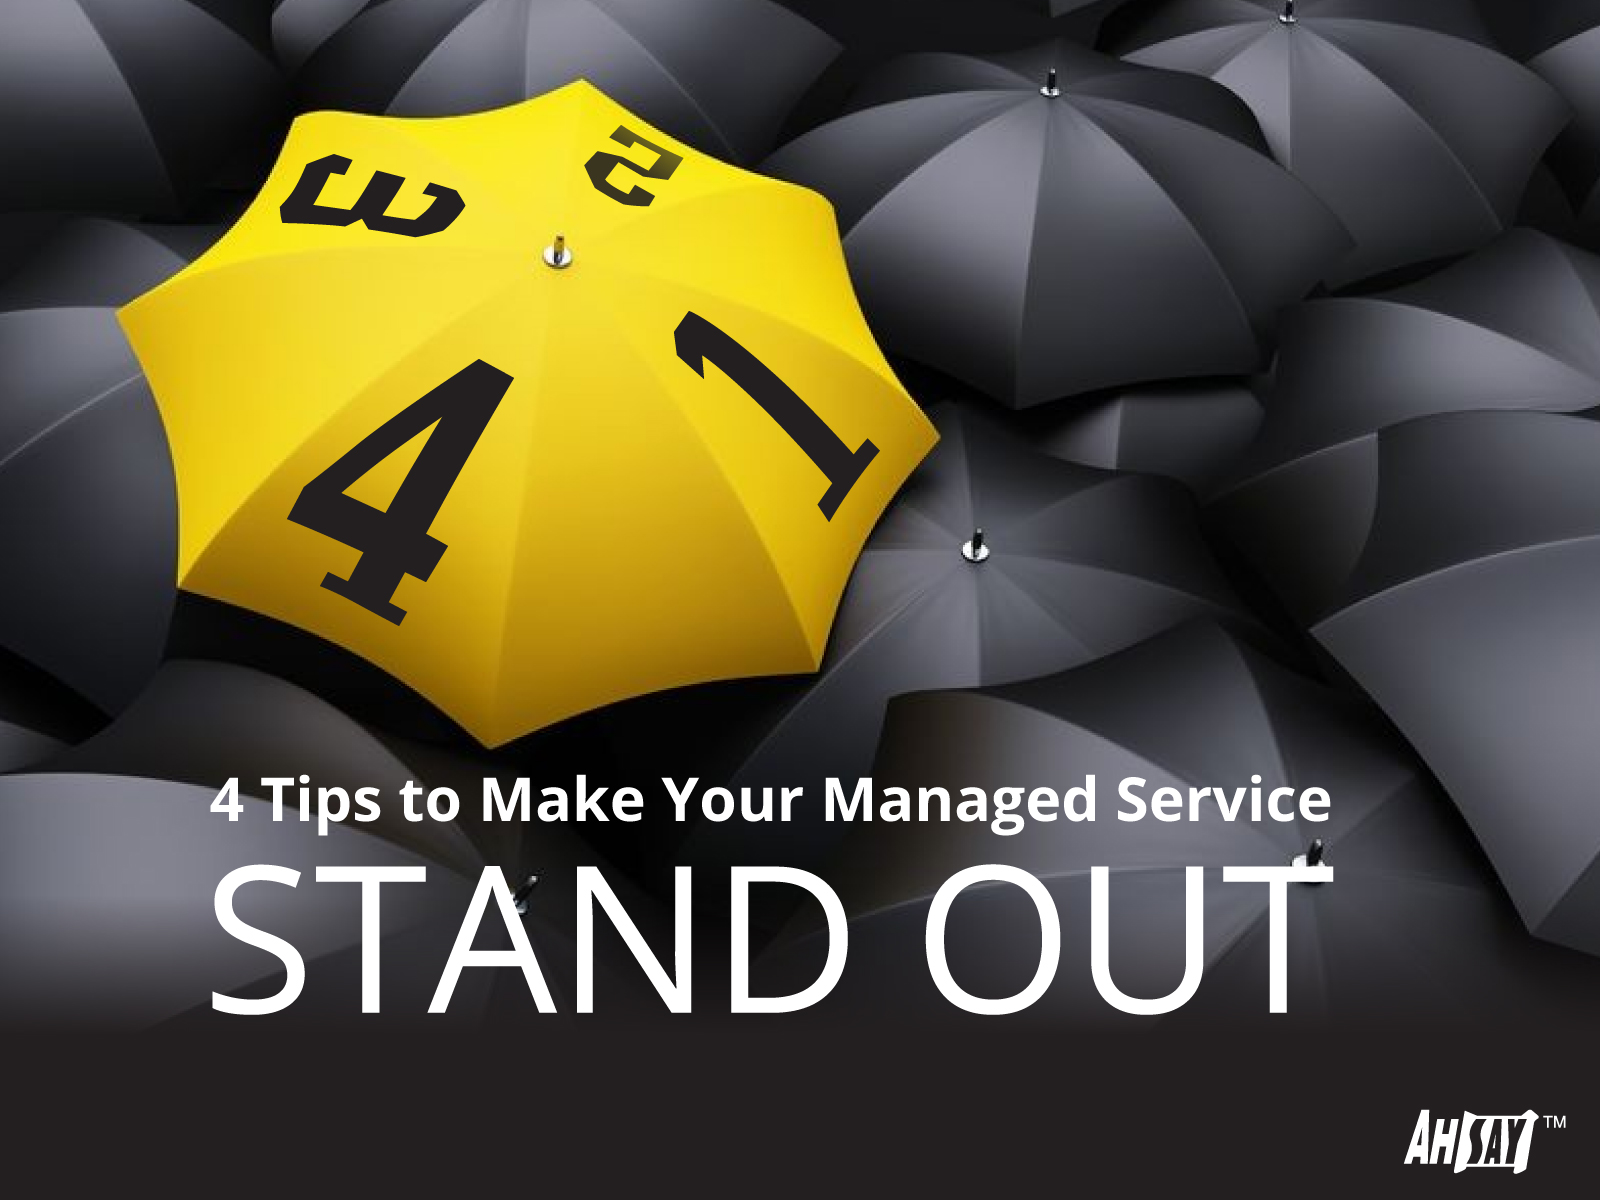 4 Tips to Make Your Managed Service Stand Out